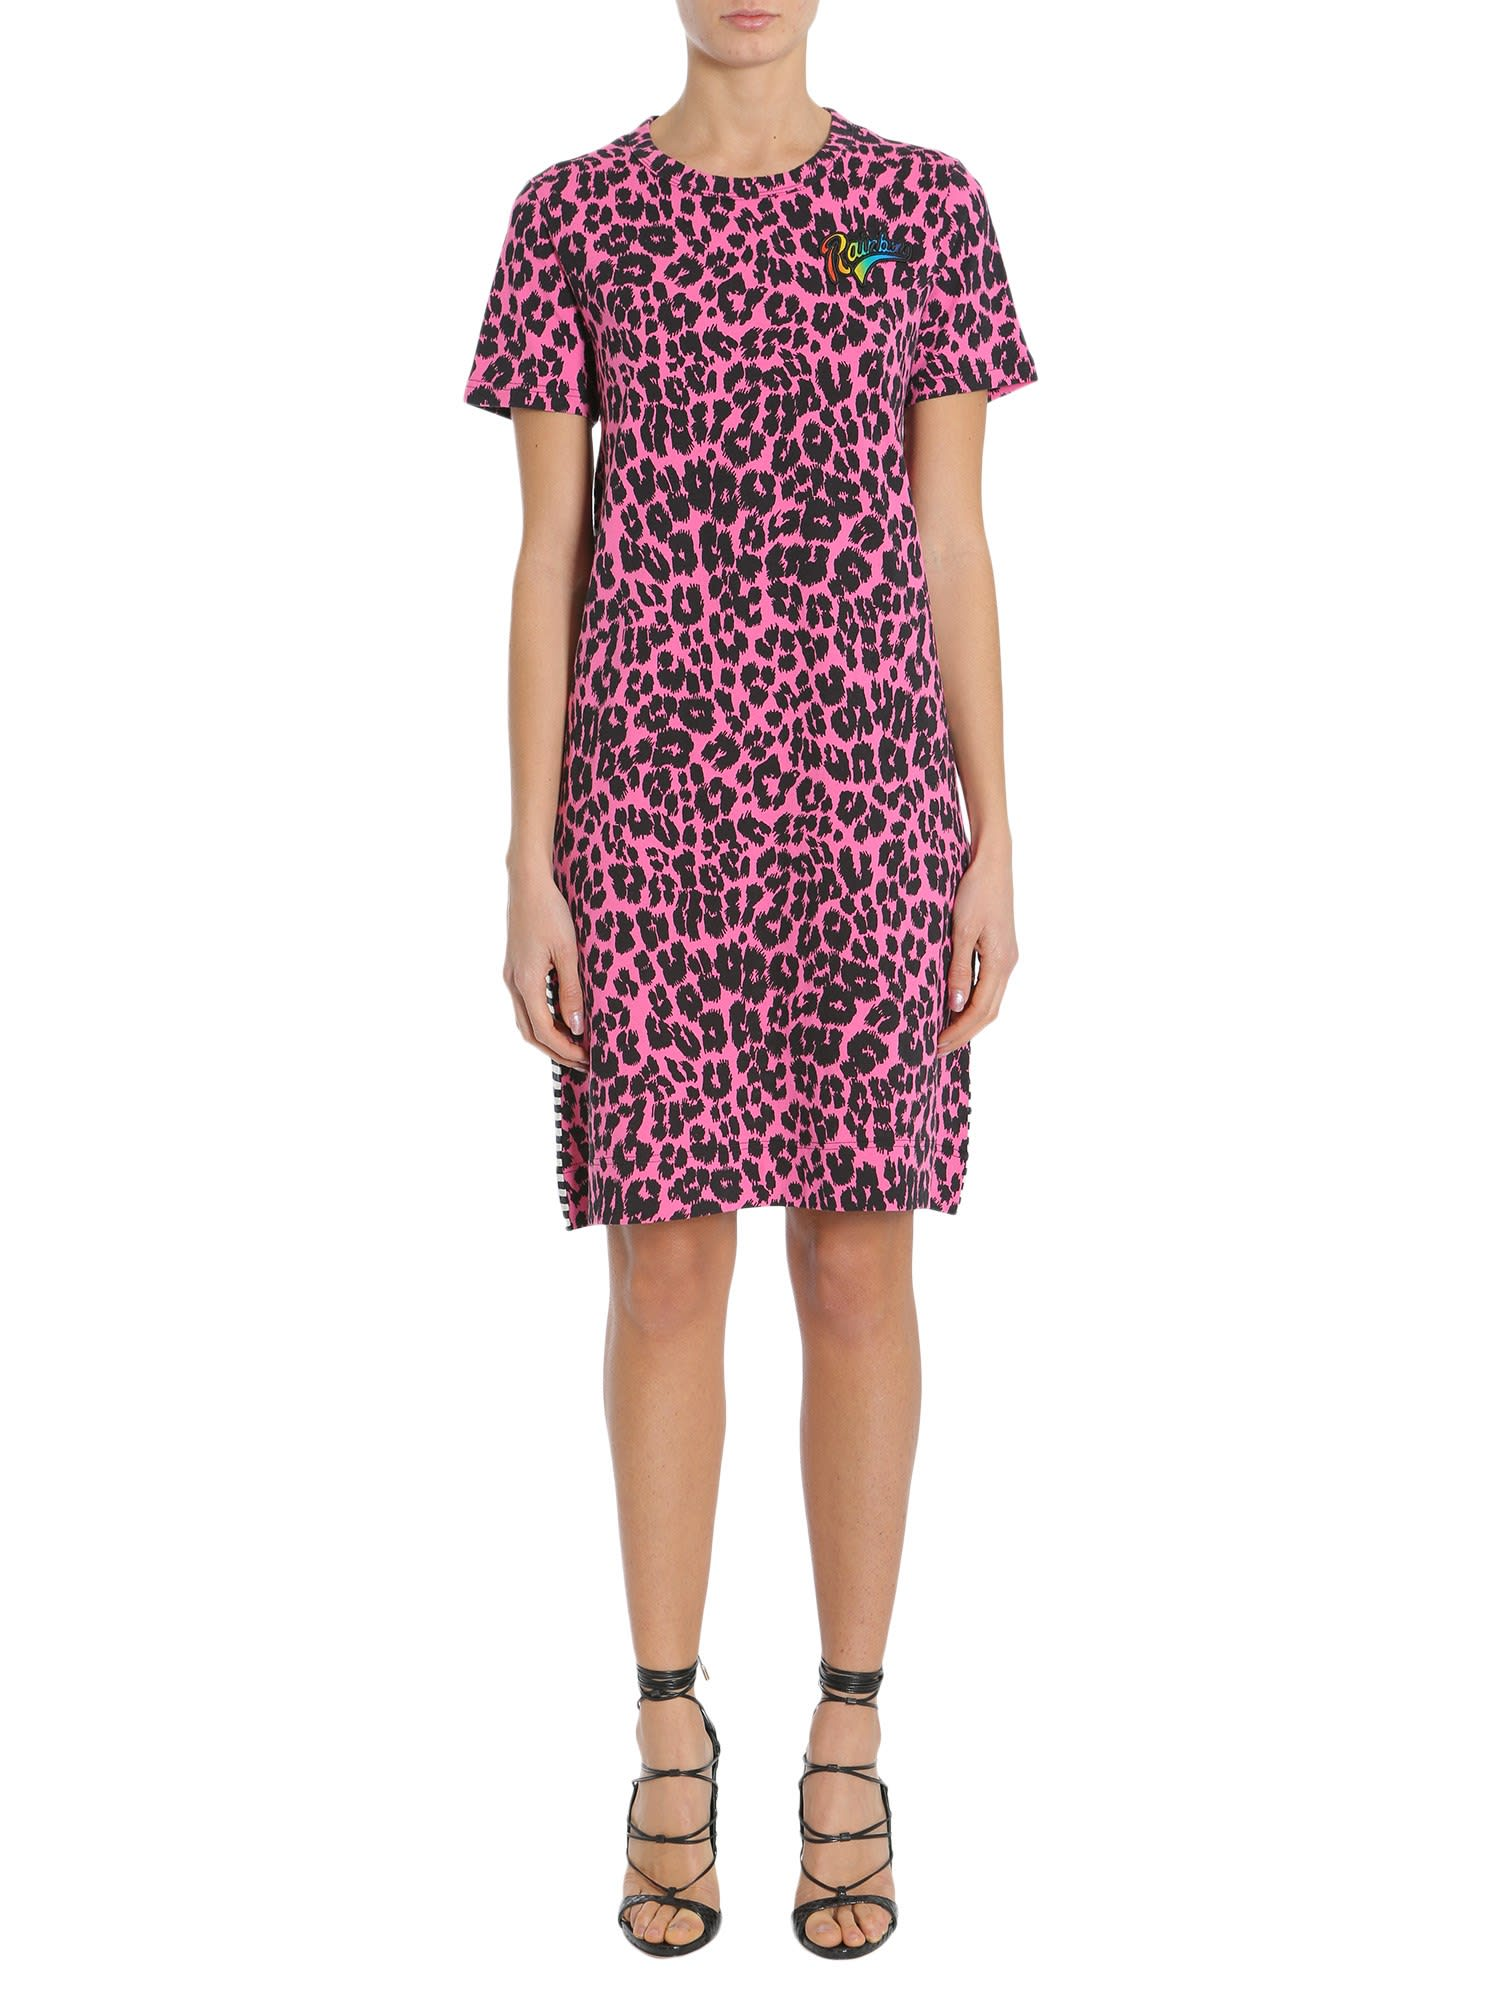 Marc Jacobs Printed Patchwork Dress